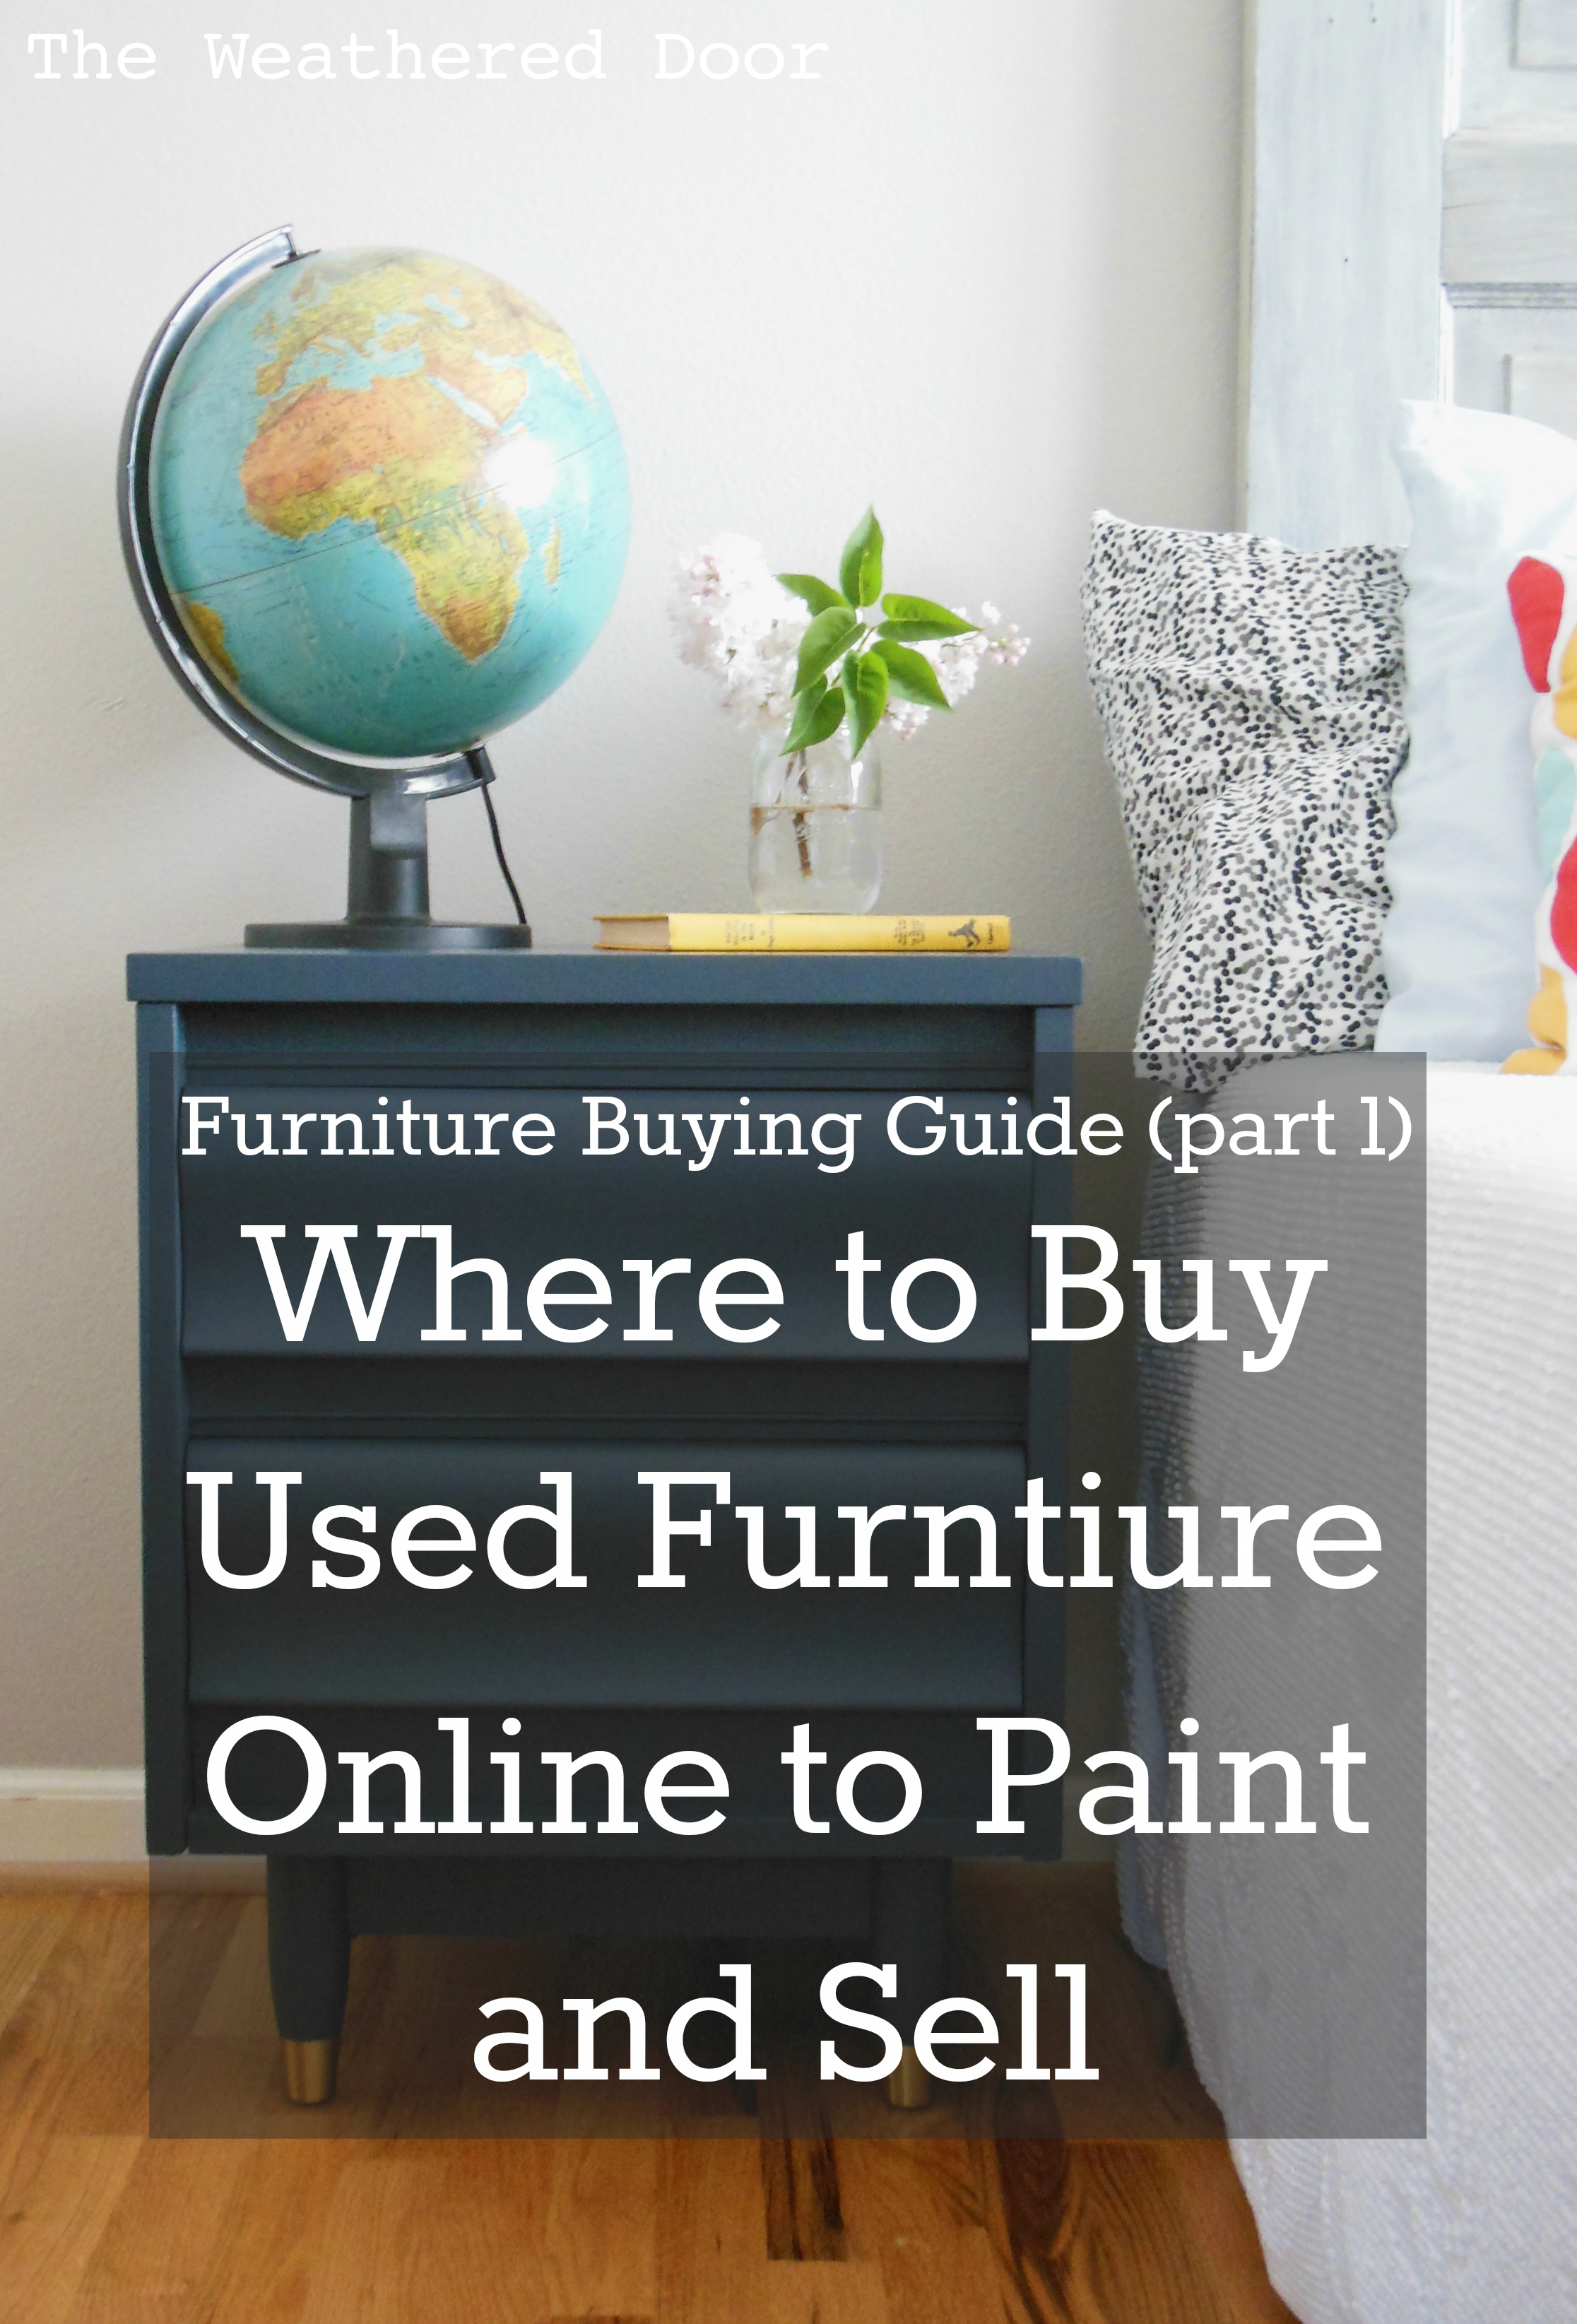 Furniture Buying Guide Where to Look for and Buy Used